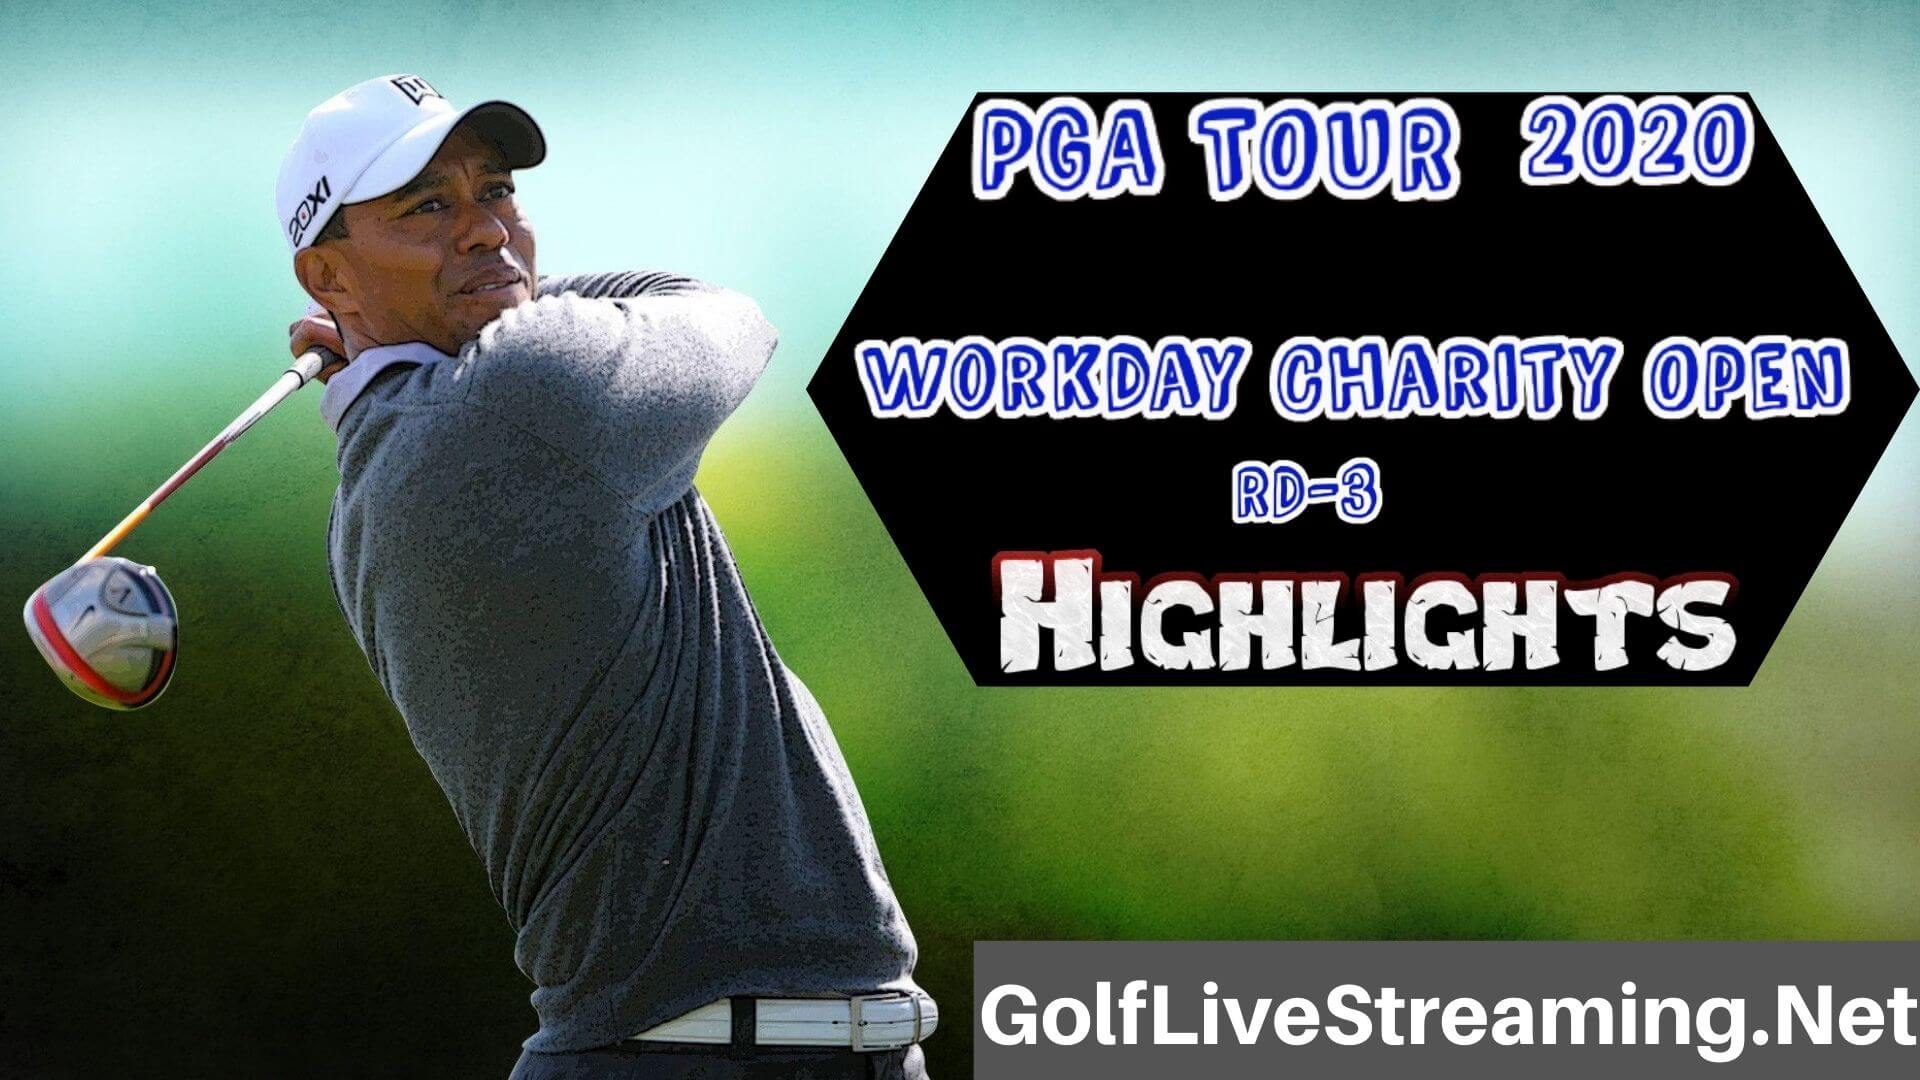 Workday Charity Open Rd 3 Highlights 2020 PGA TOUR